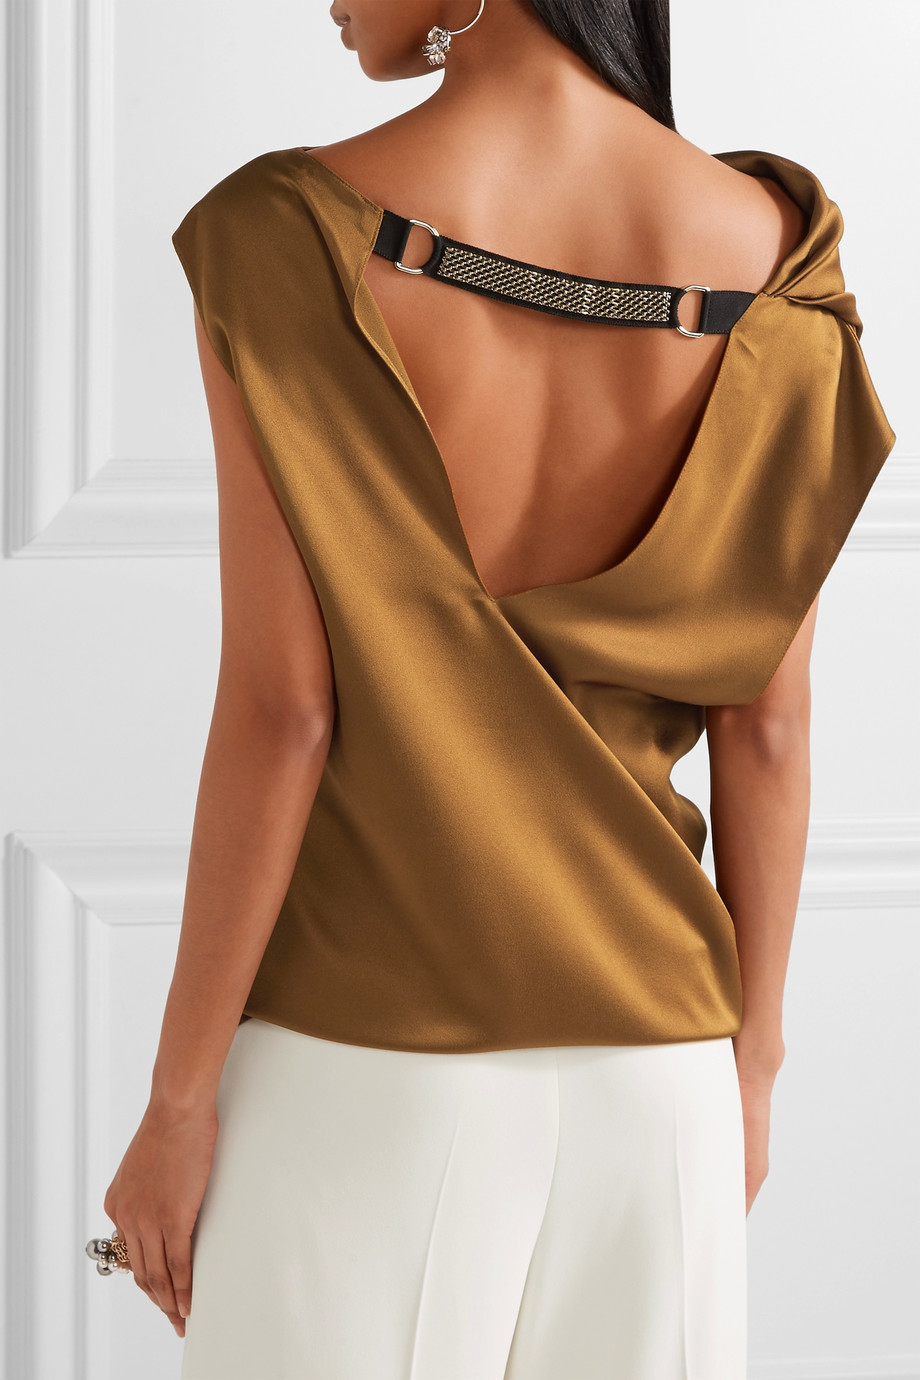 Satin blouse Lanvin buy Satin blouse Lanvin internet shop